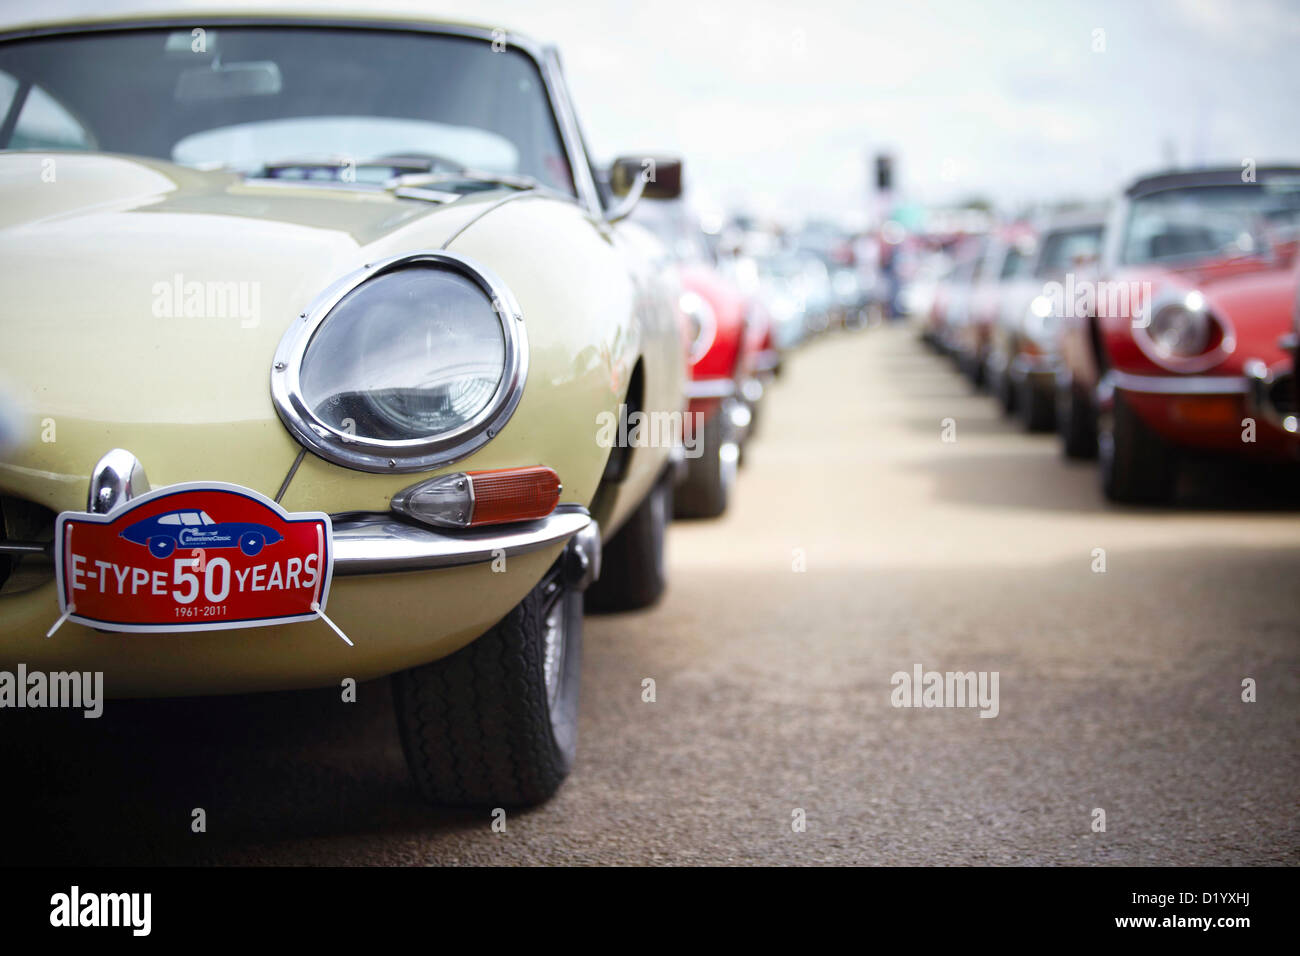 Das Silverstone Classic Car event Stockbild